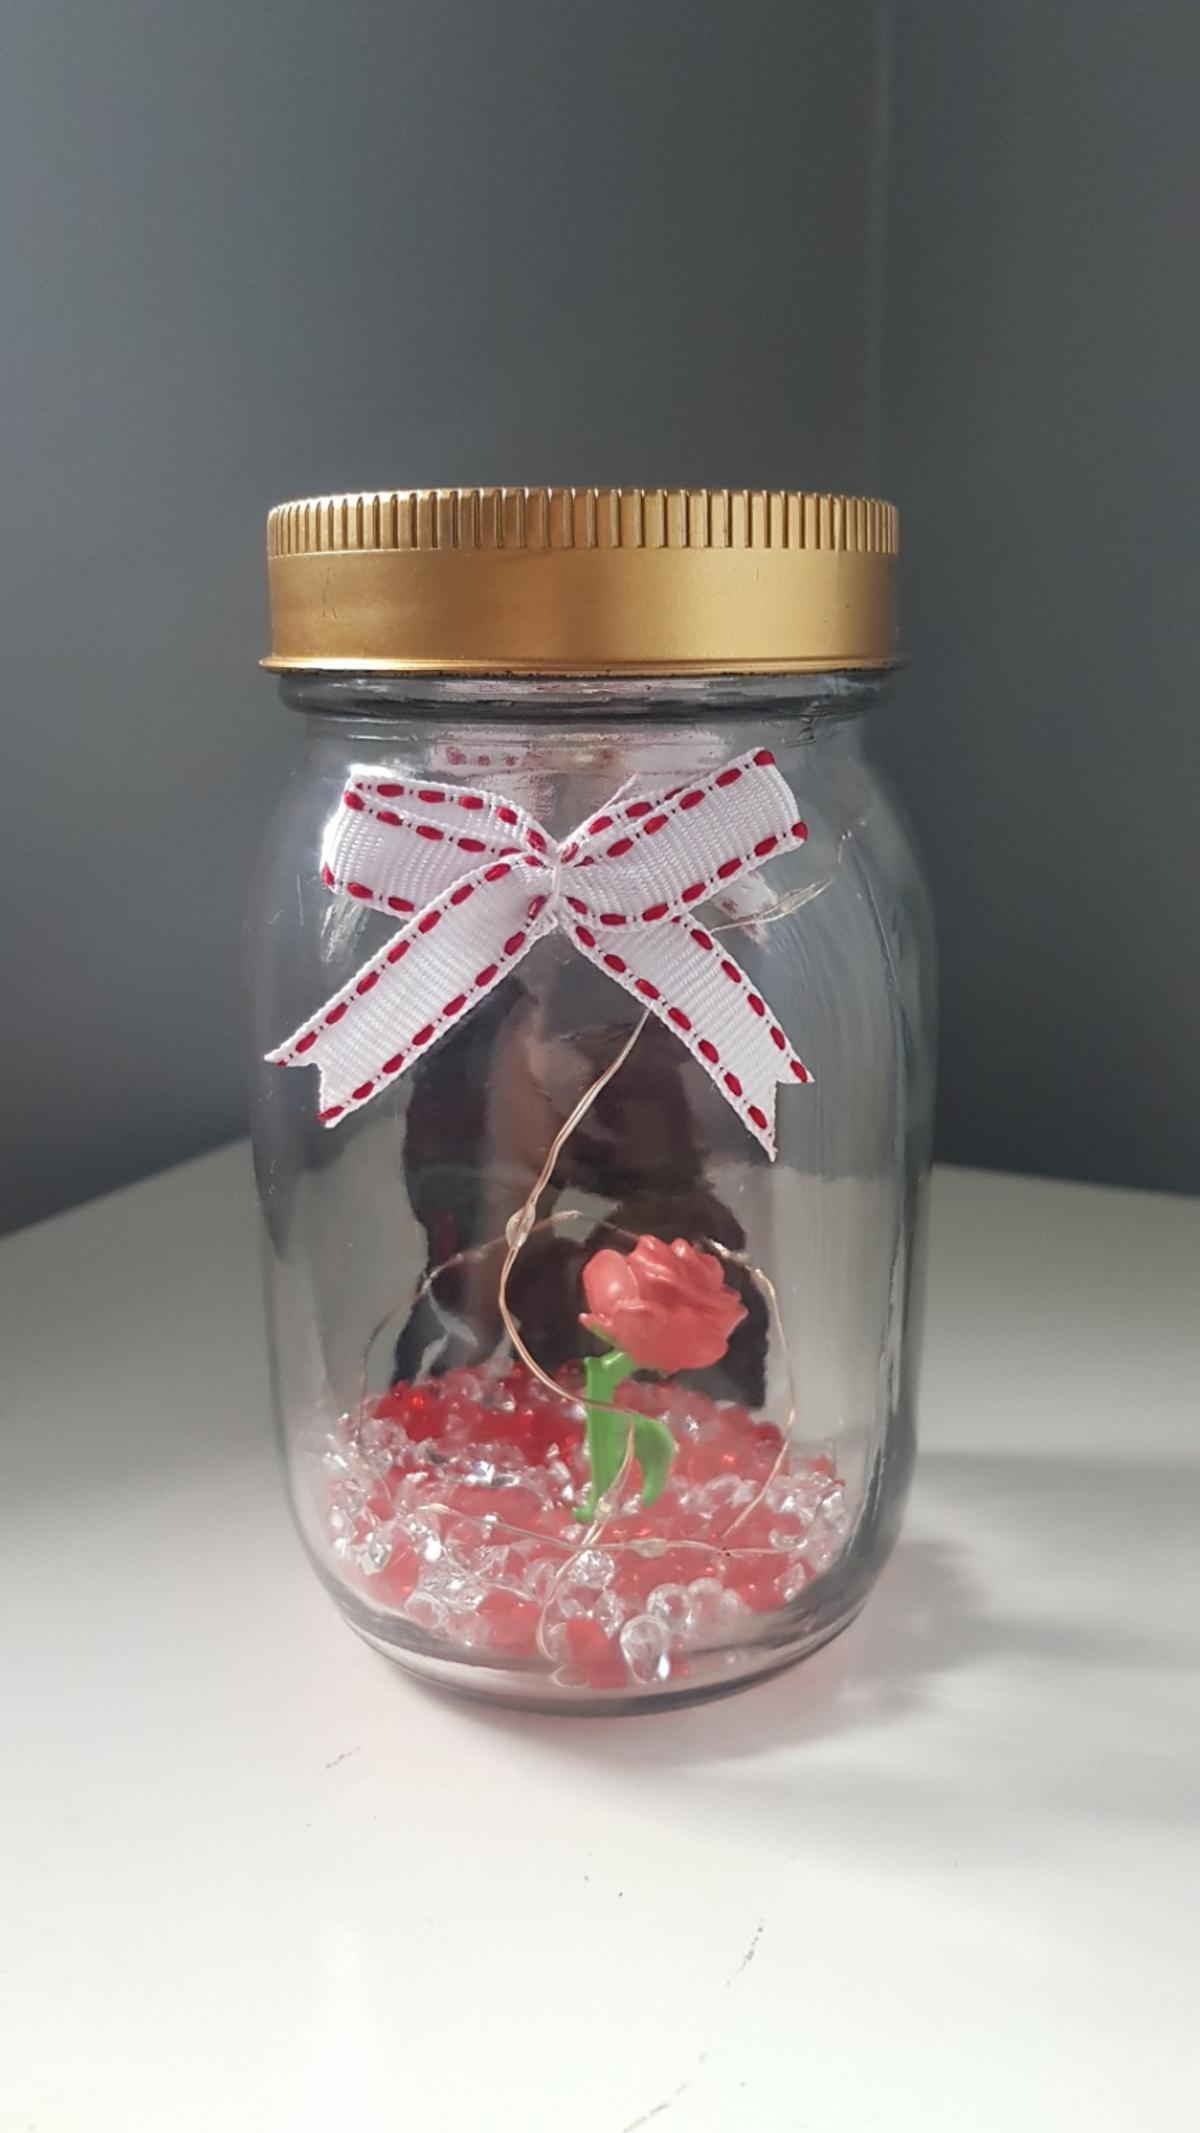 Beauty And The Beast Light Up Jar In Walsall Für 1000 Kaufen Shpock